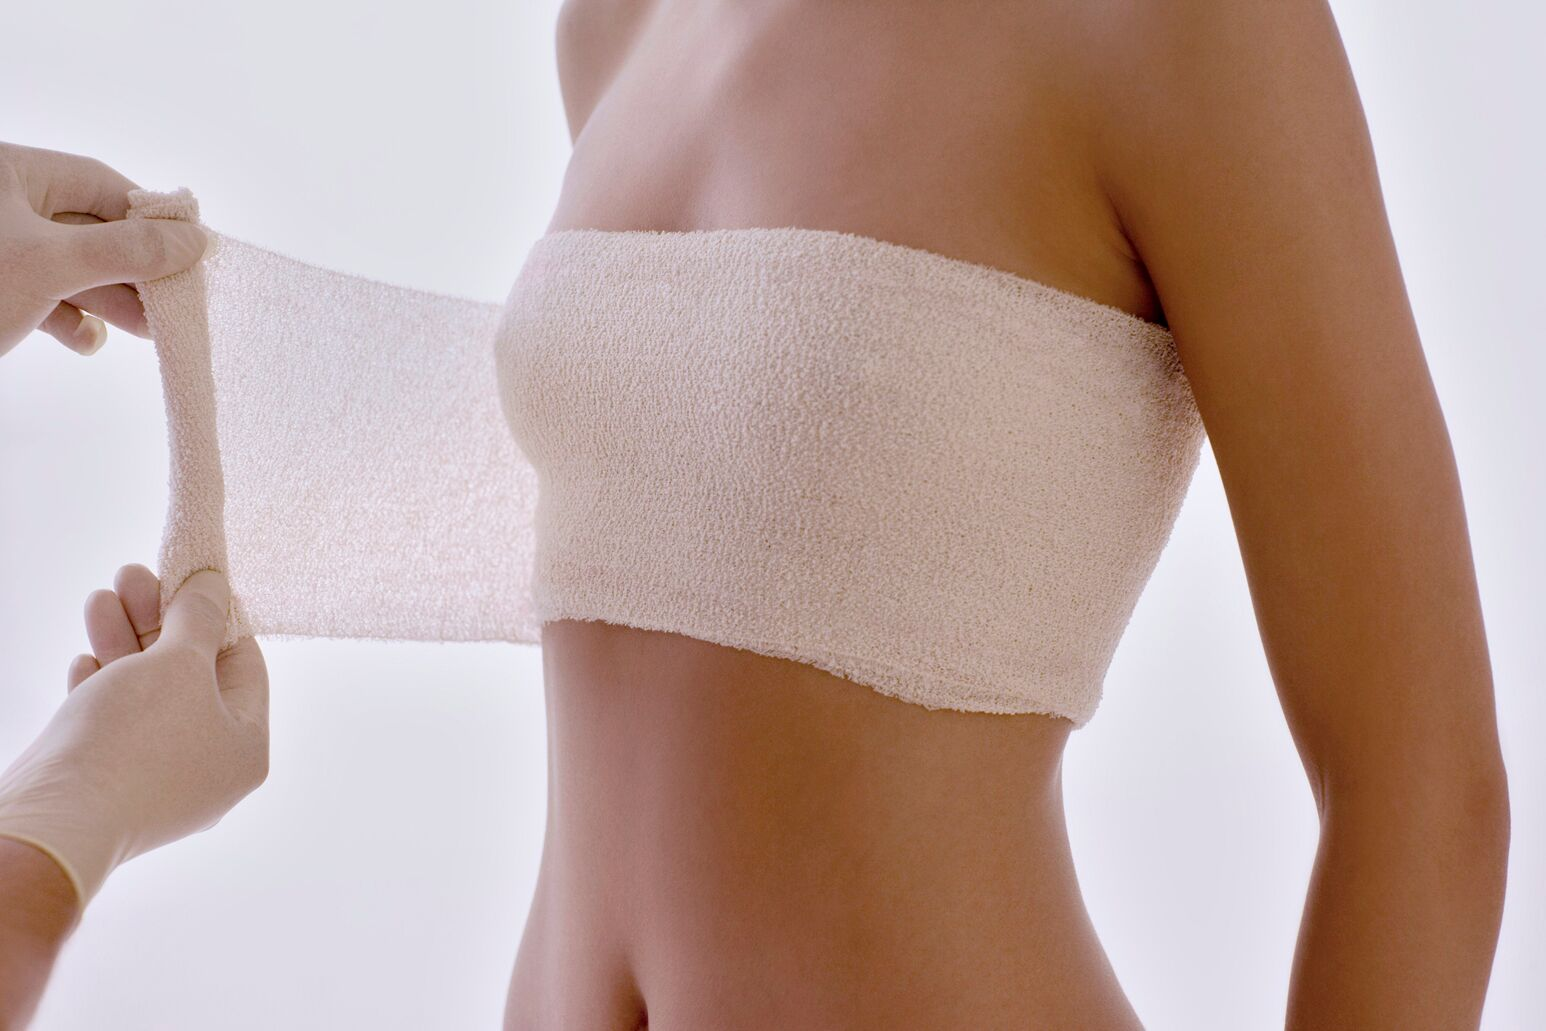 A doctor bandages a woman's breast